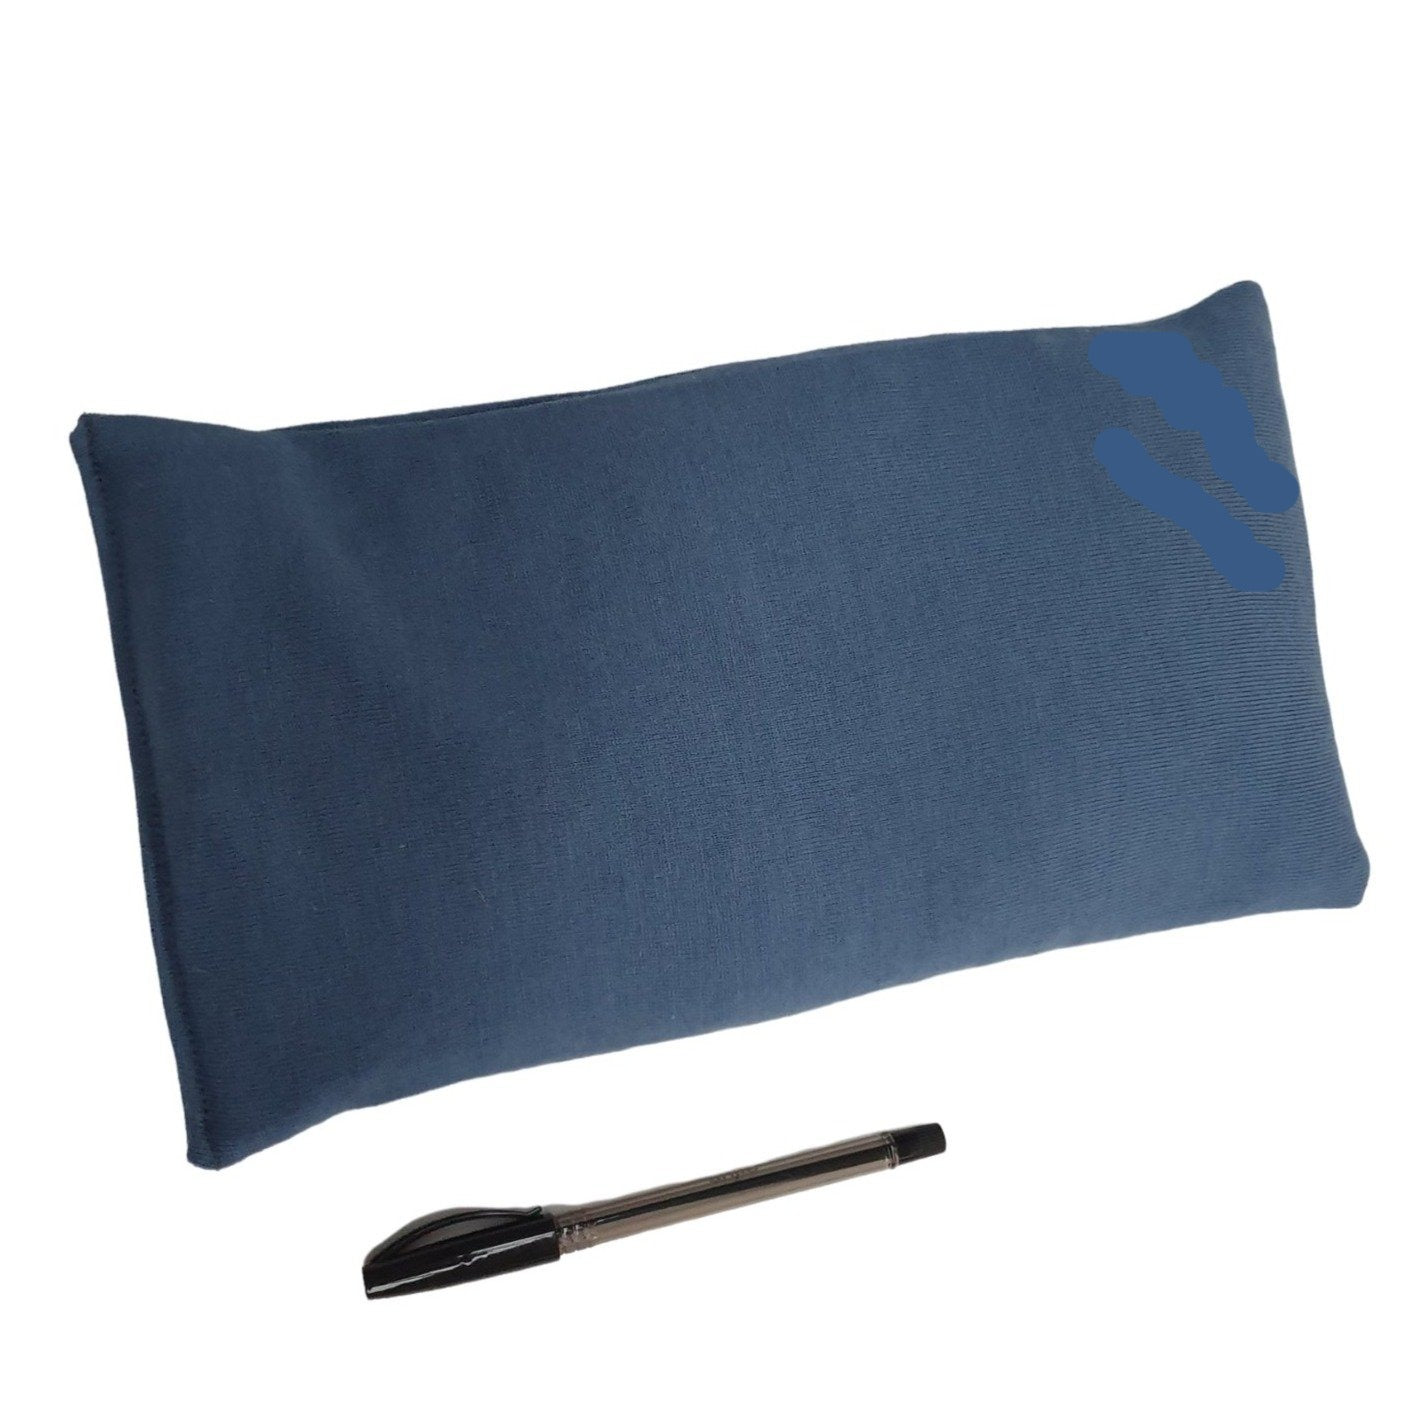 Merino wool heatbag